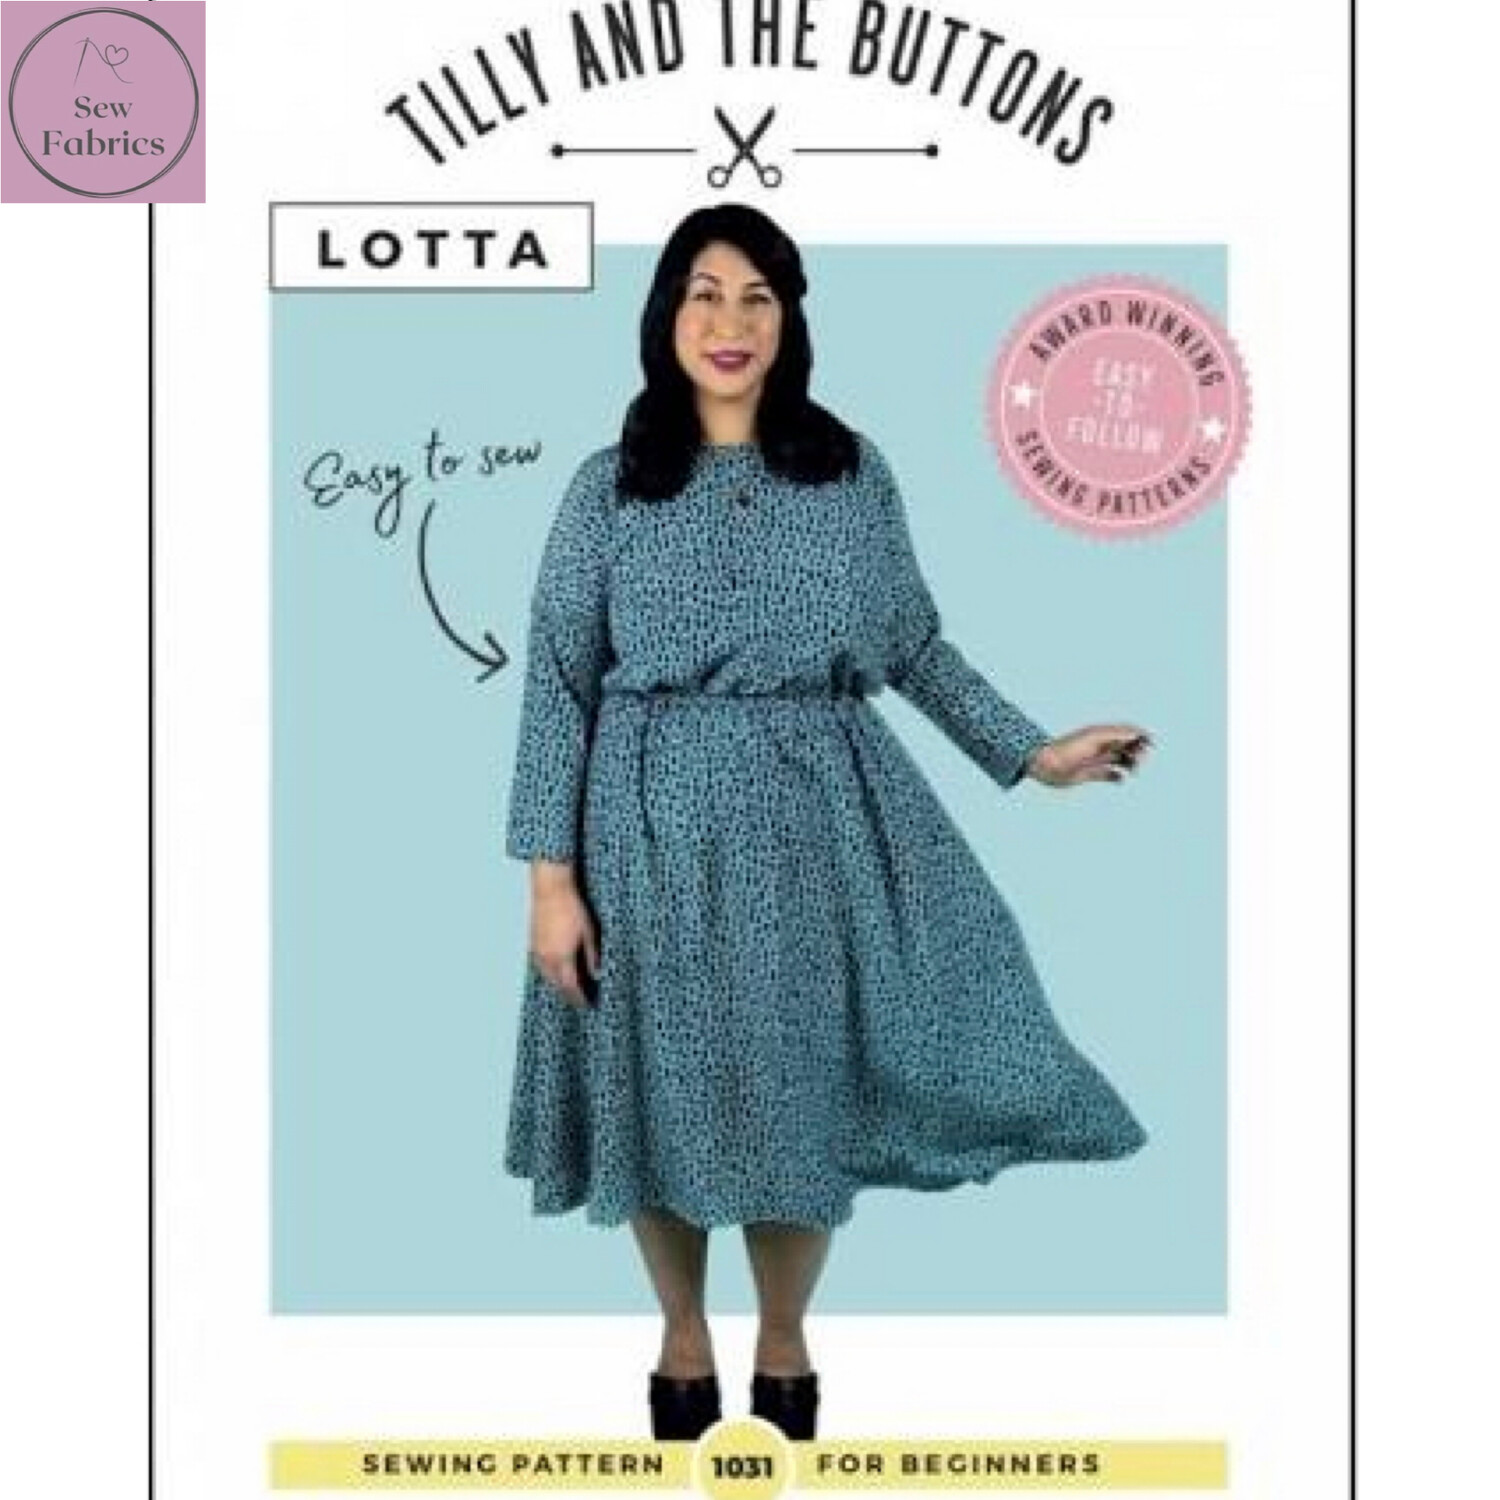 Lotta Dress Printed Sewing Pattern by Tilly and The Buttons